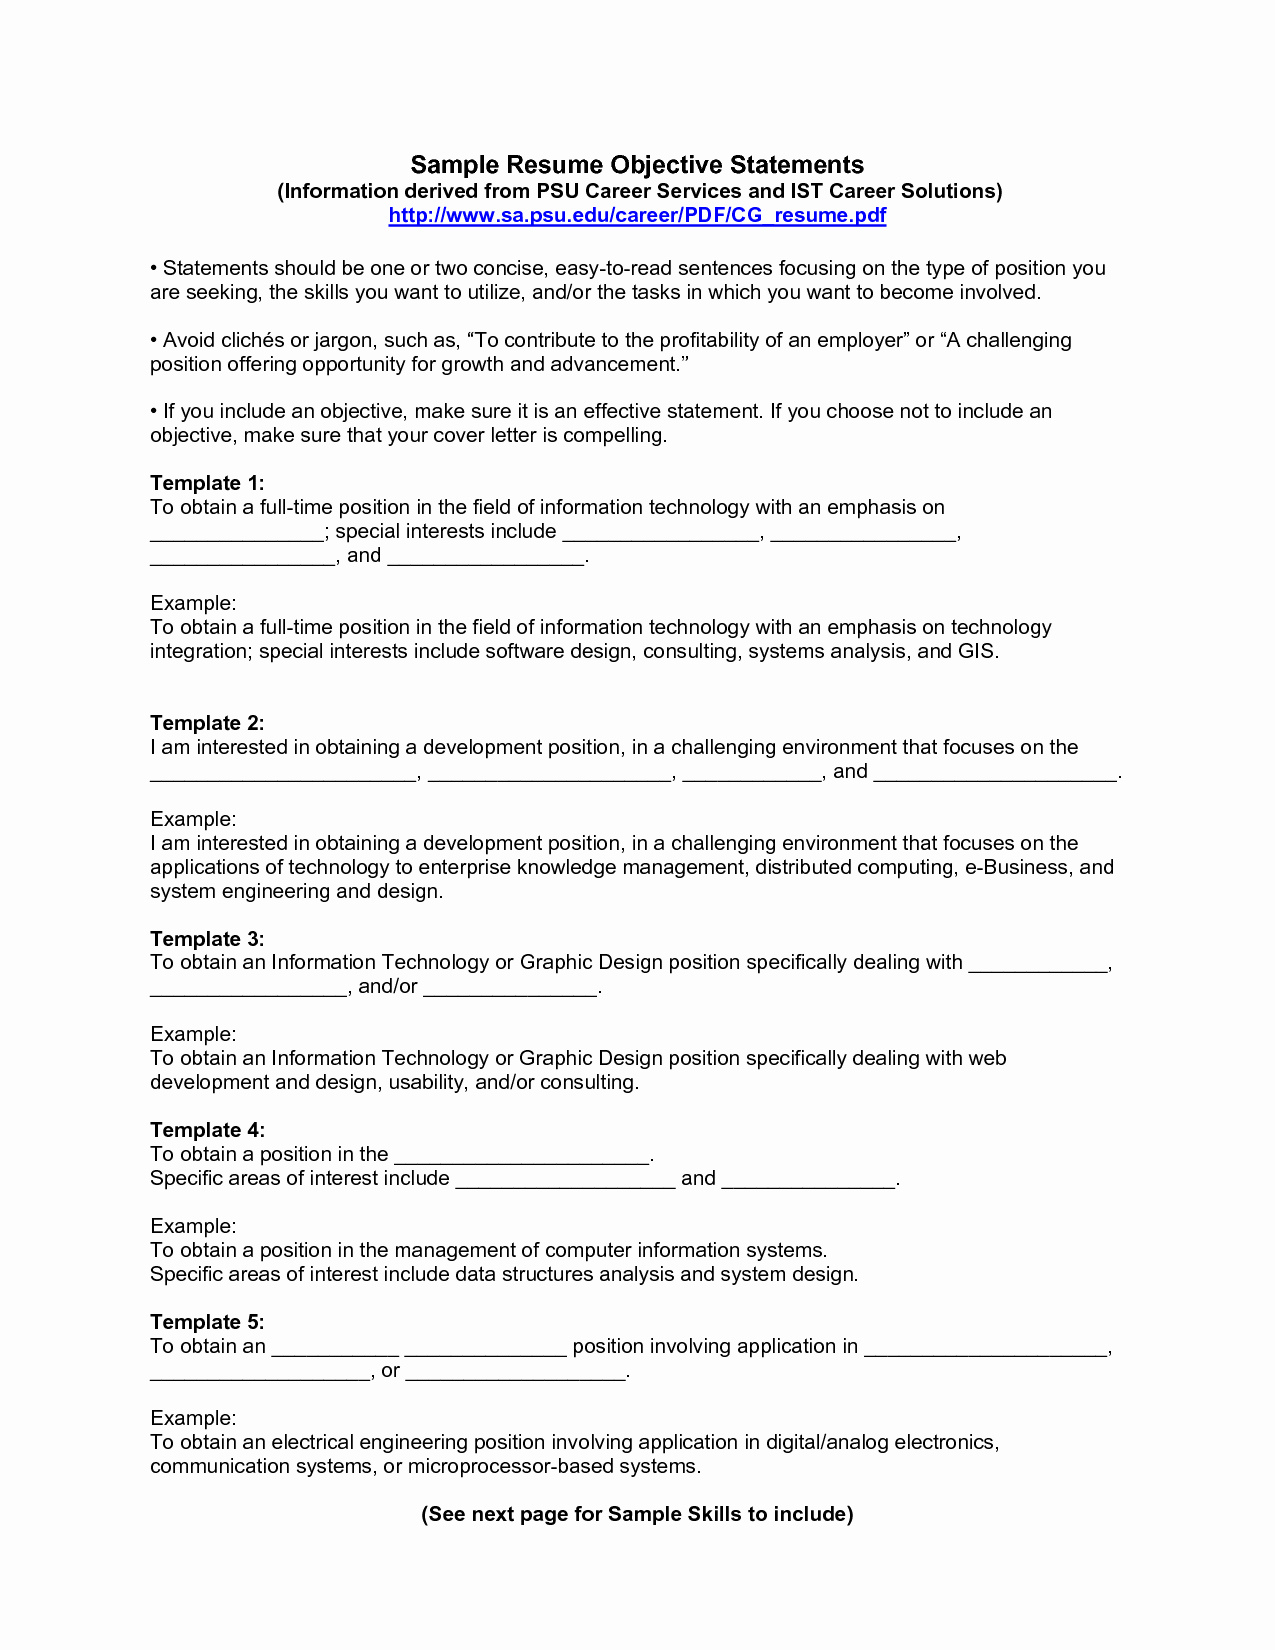 10 Sample Resume Objective Statements